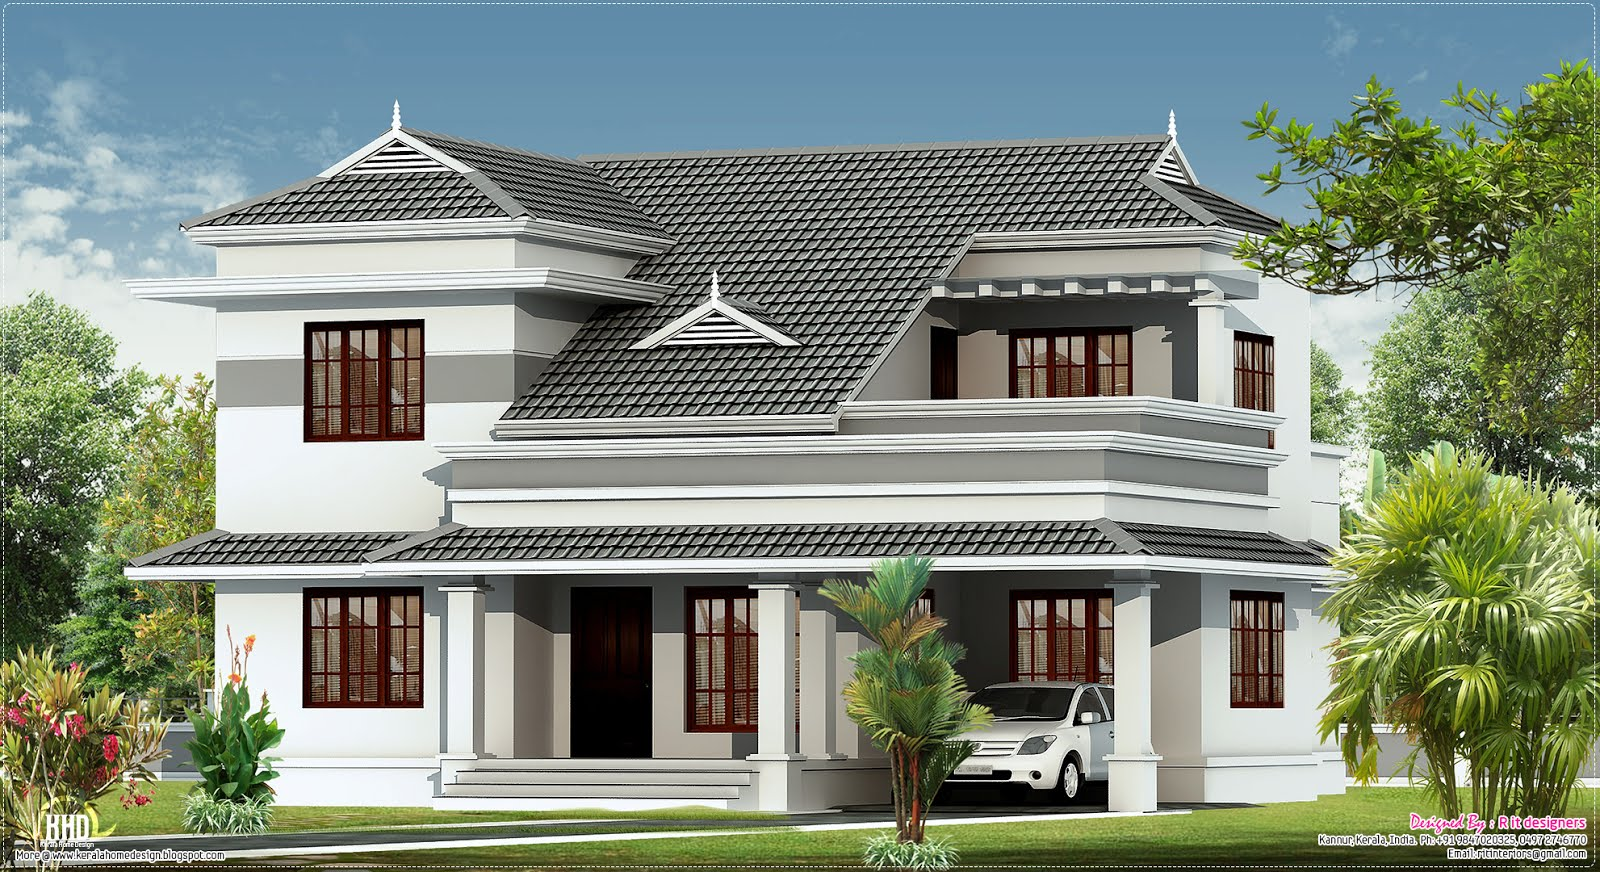 New villa design in 2250 kerala home design and for New houses in kerala